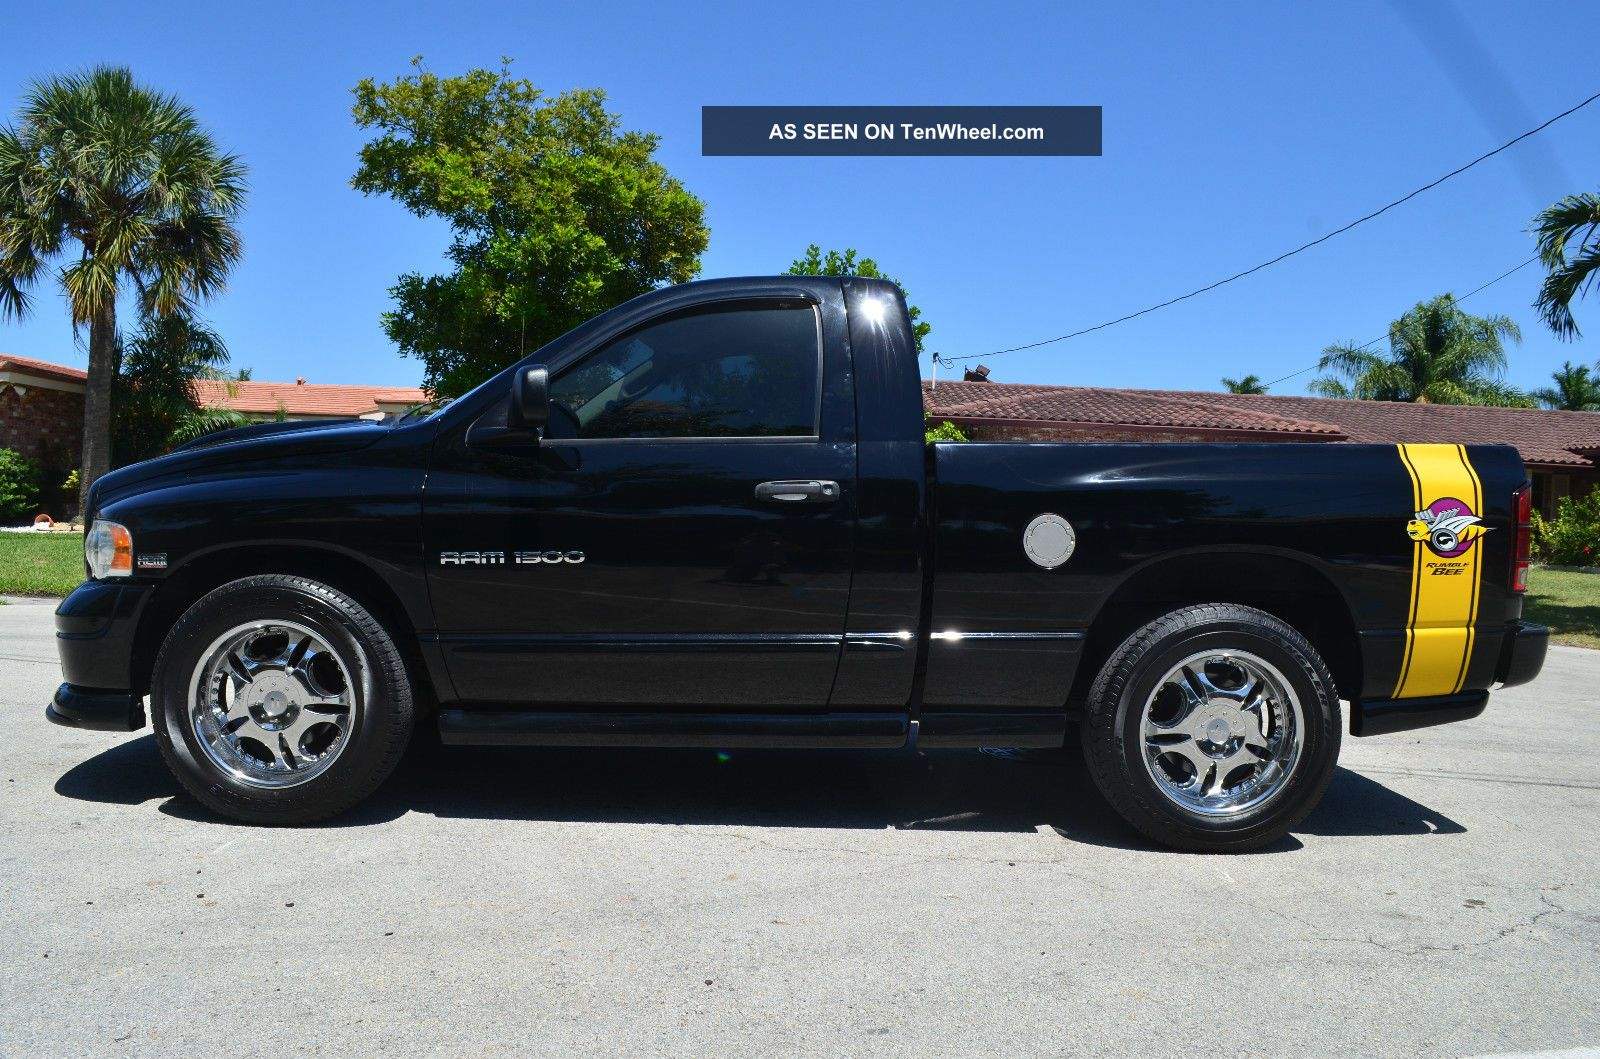 2004 Dodge Ram 1500 Rumble Bee Hemi Car Fax Florida Truck Ram 1500 photo